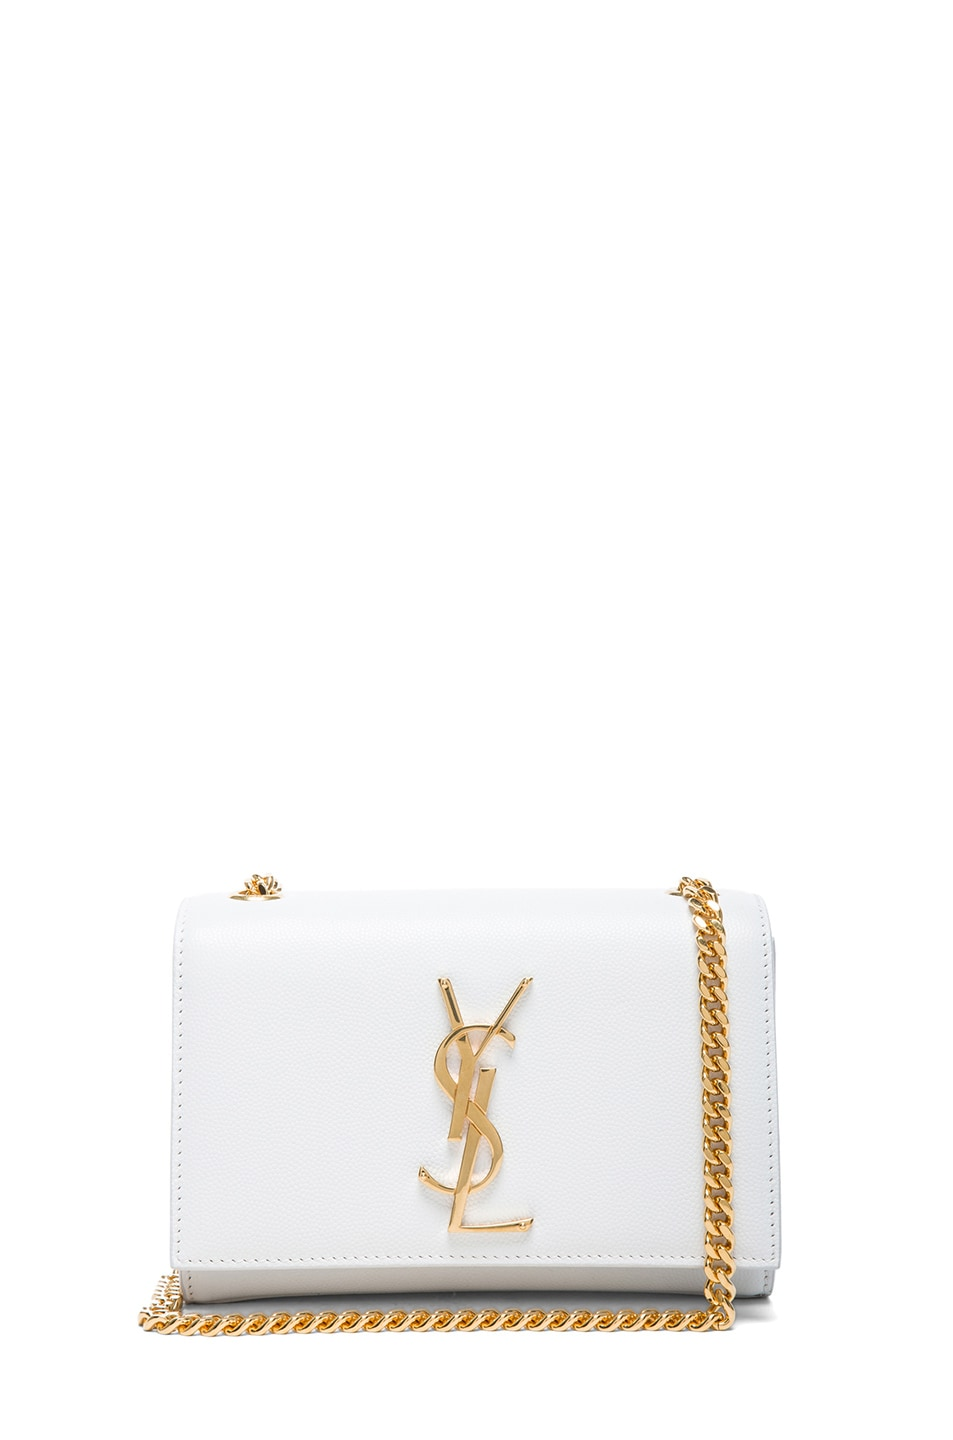 Image 1 Of Saint Lau Small Monogramme Chain Bag In Optic White